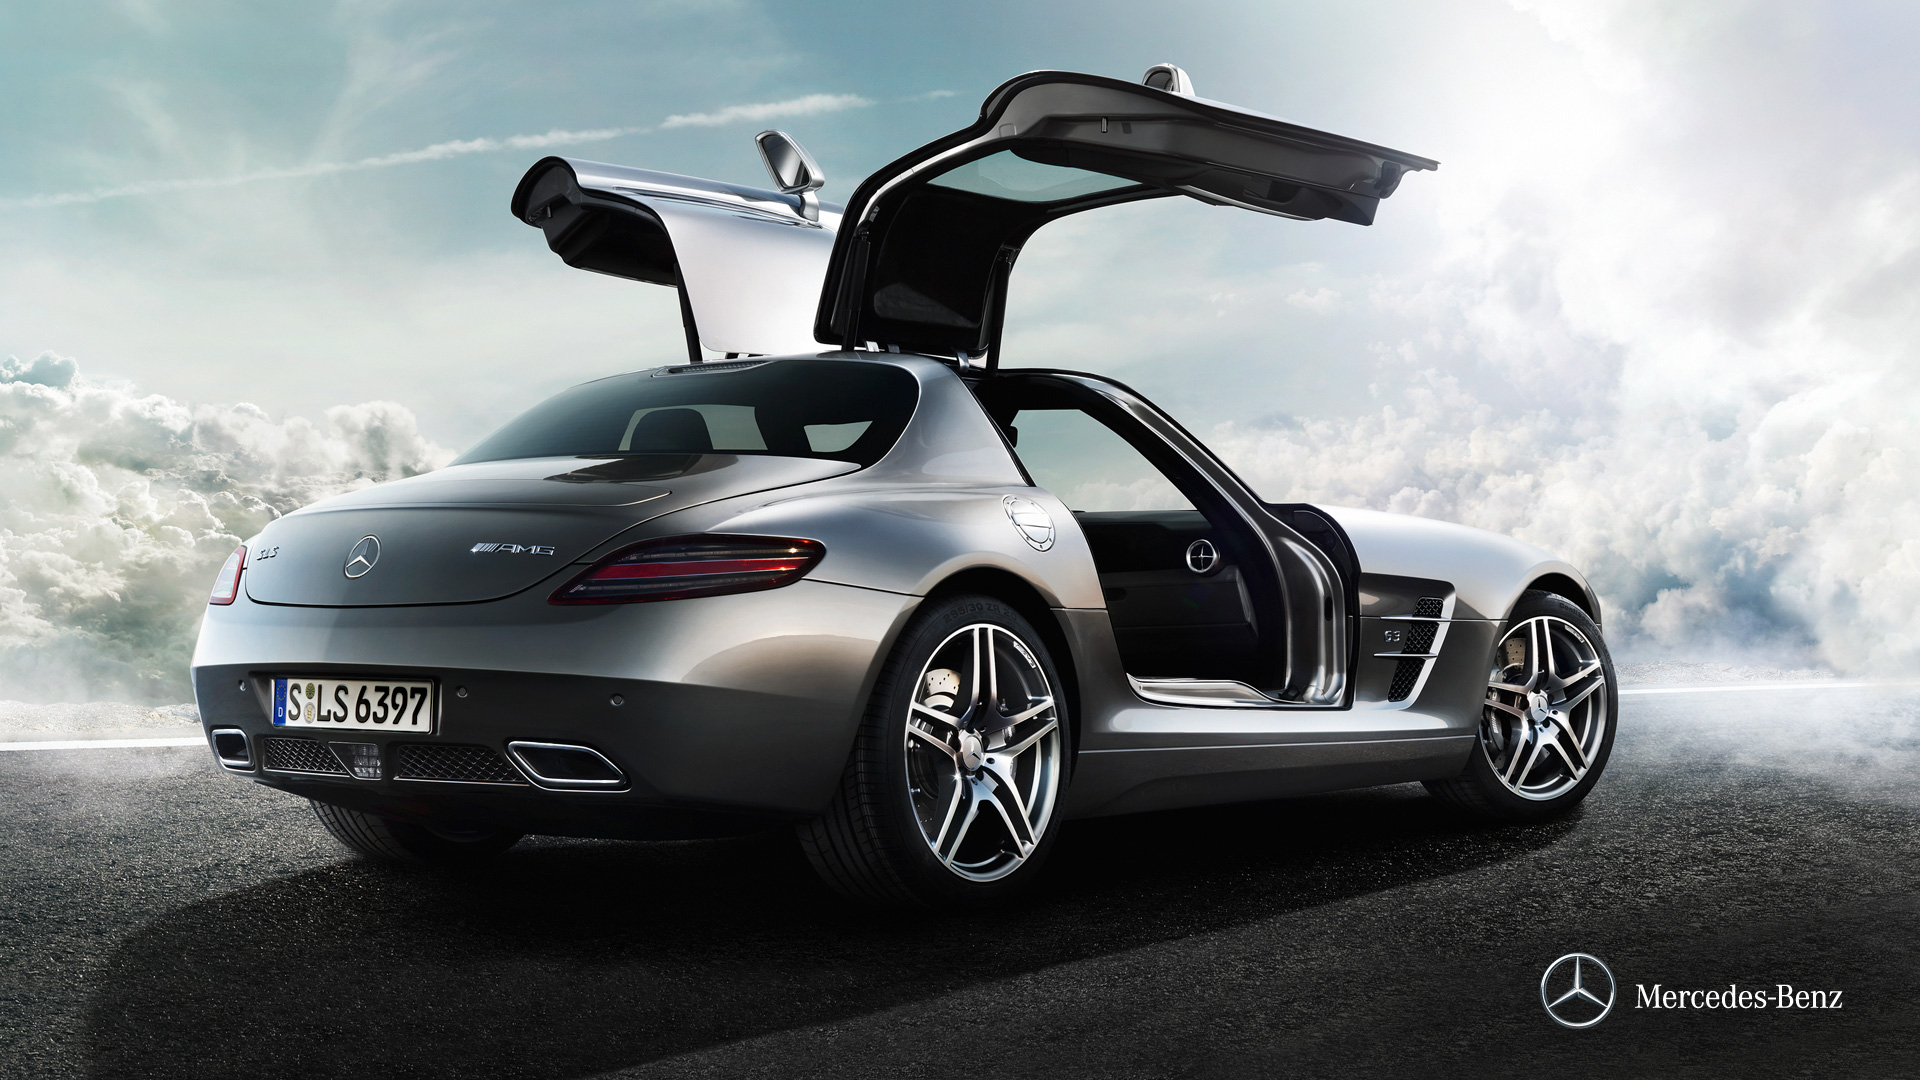 Mercedes Sls Amg Wallpaper Wallpapersafari